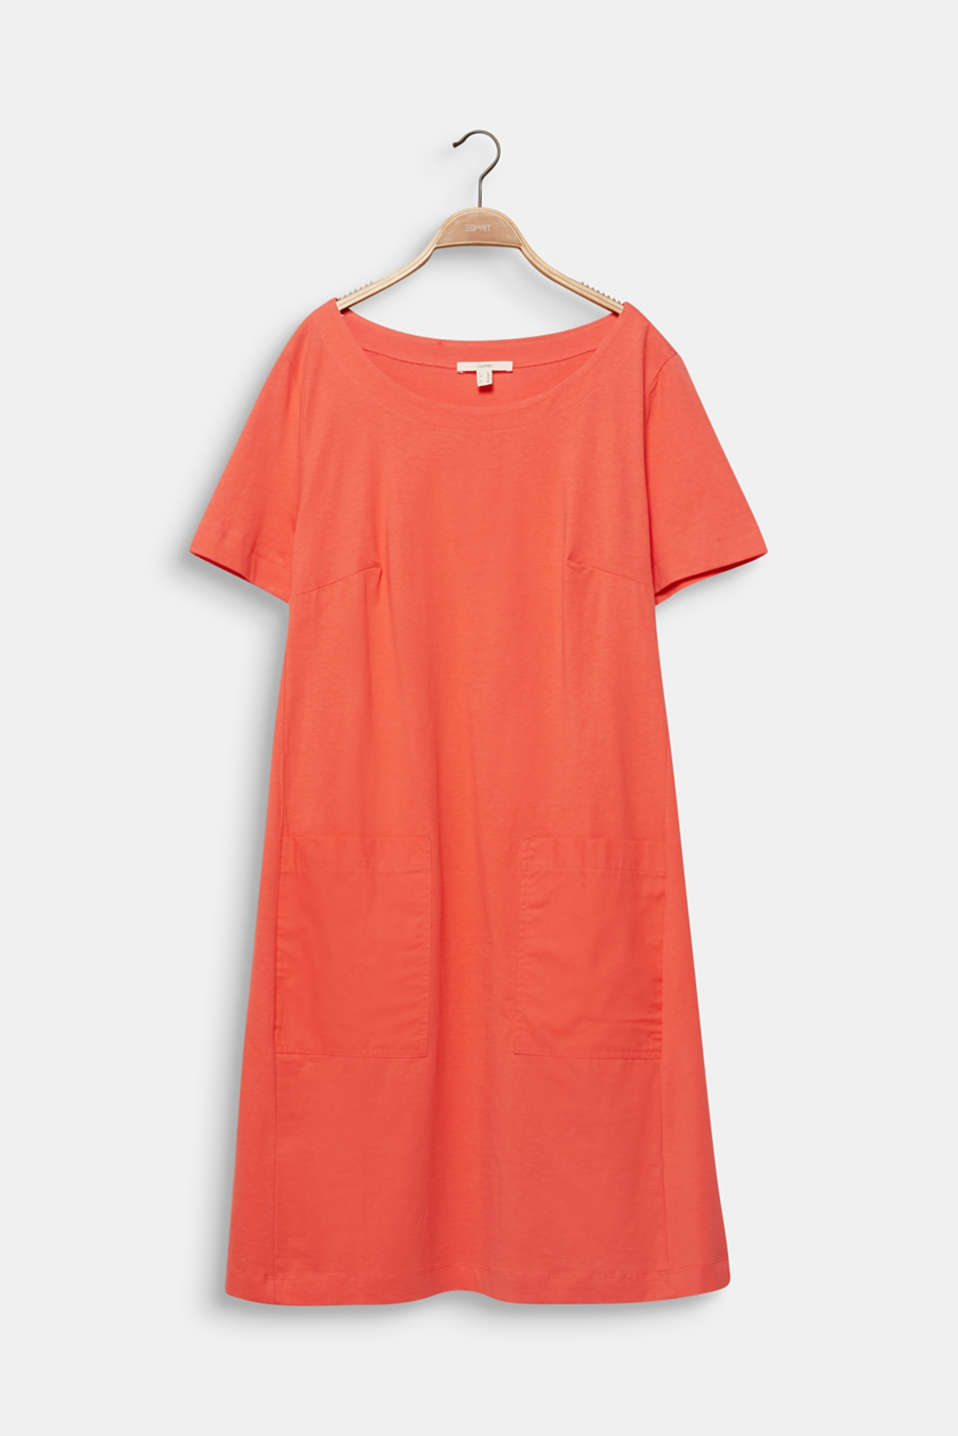 CURVY jersey dress made of 100% cotton, CORAL, detail image number 6